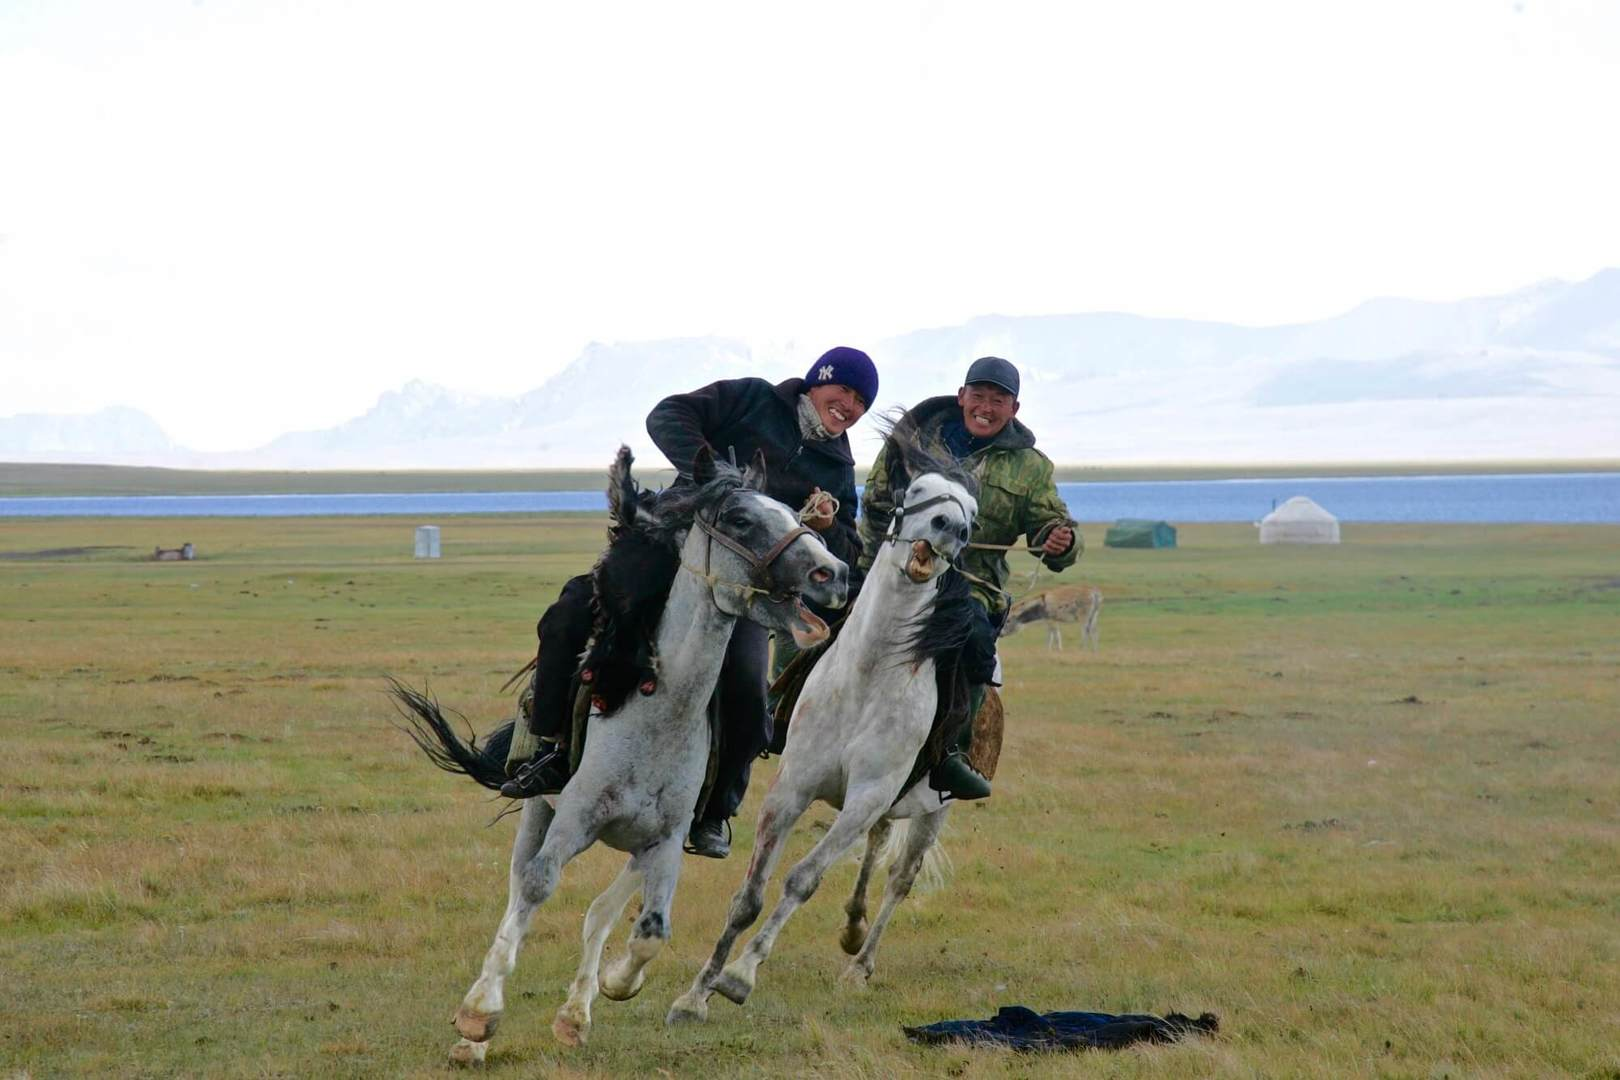 horse games and horse riding during Kyrgyzstan tour in summer